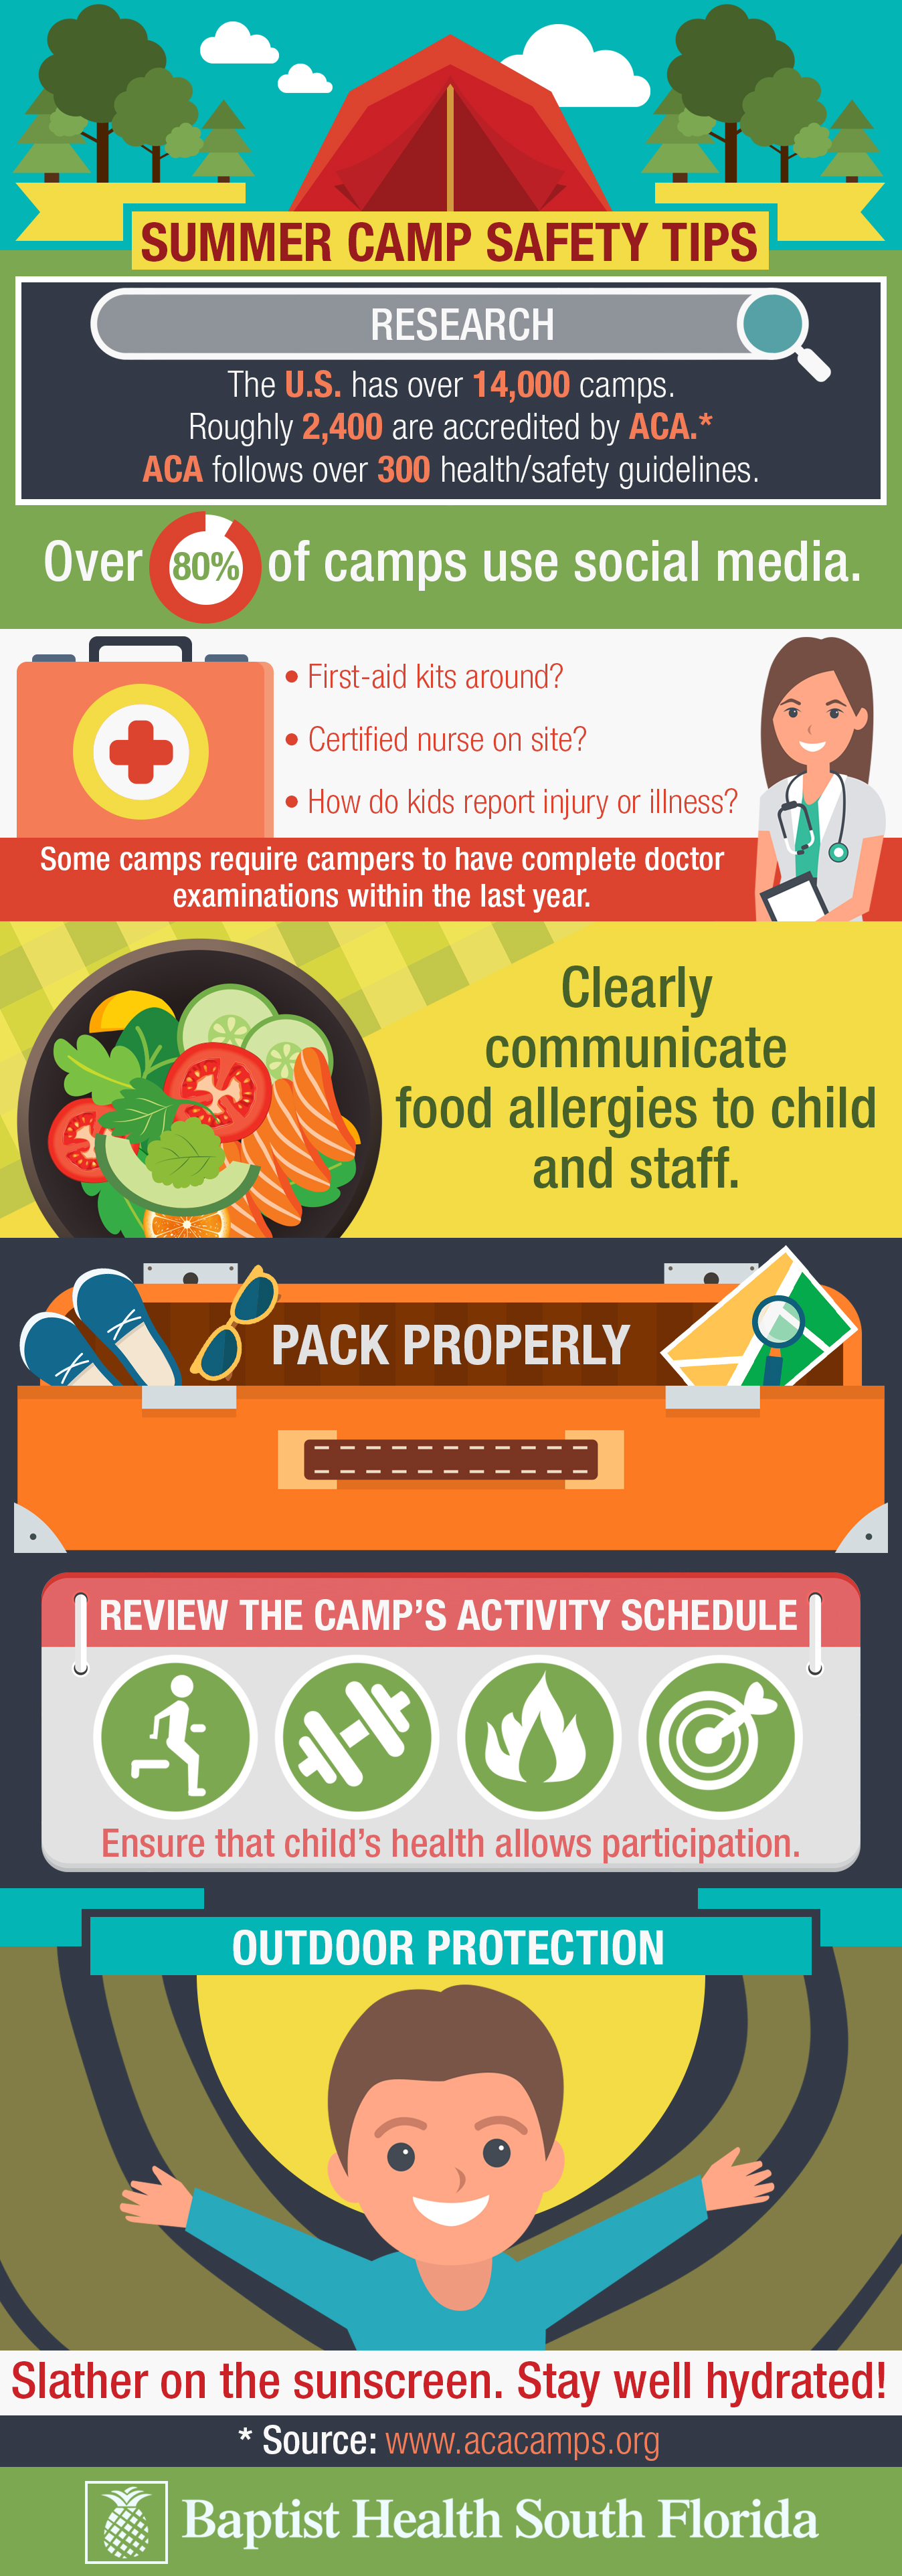 Summer Camp Safety Tips Infographic